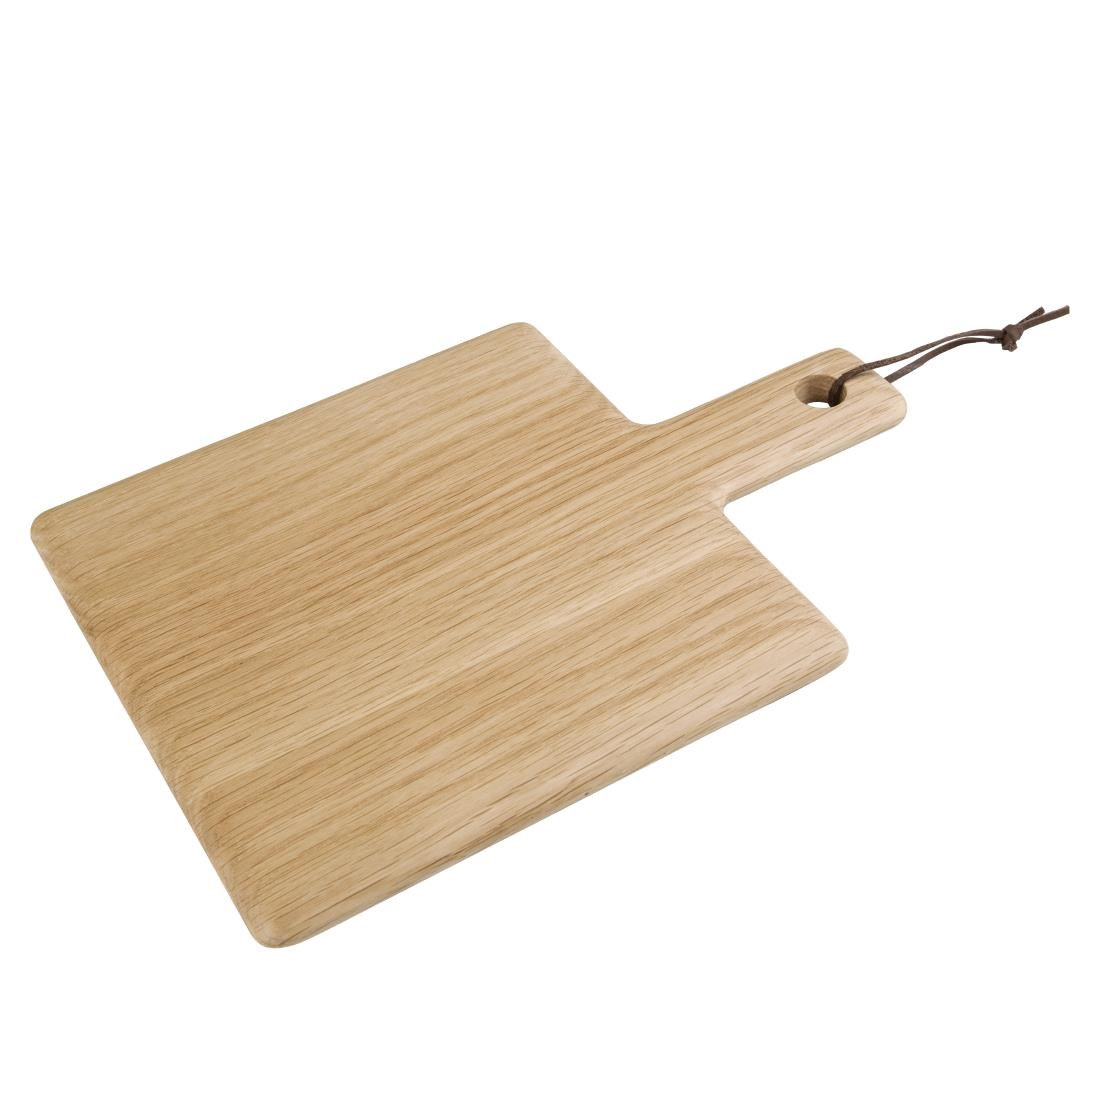 Olympia Oak Wood Handled Wooden Board